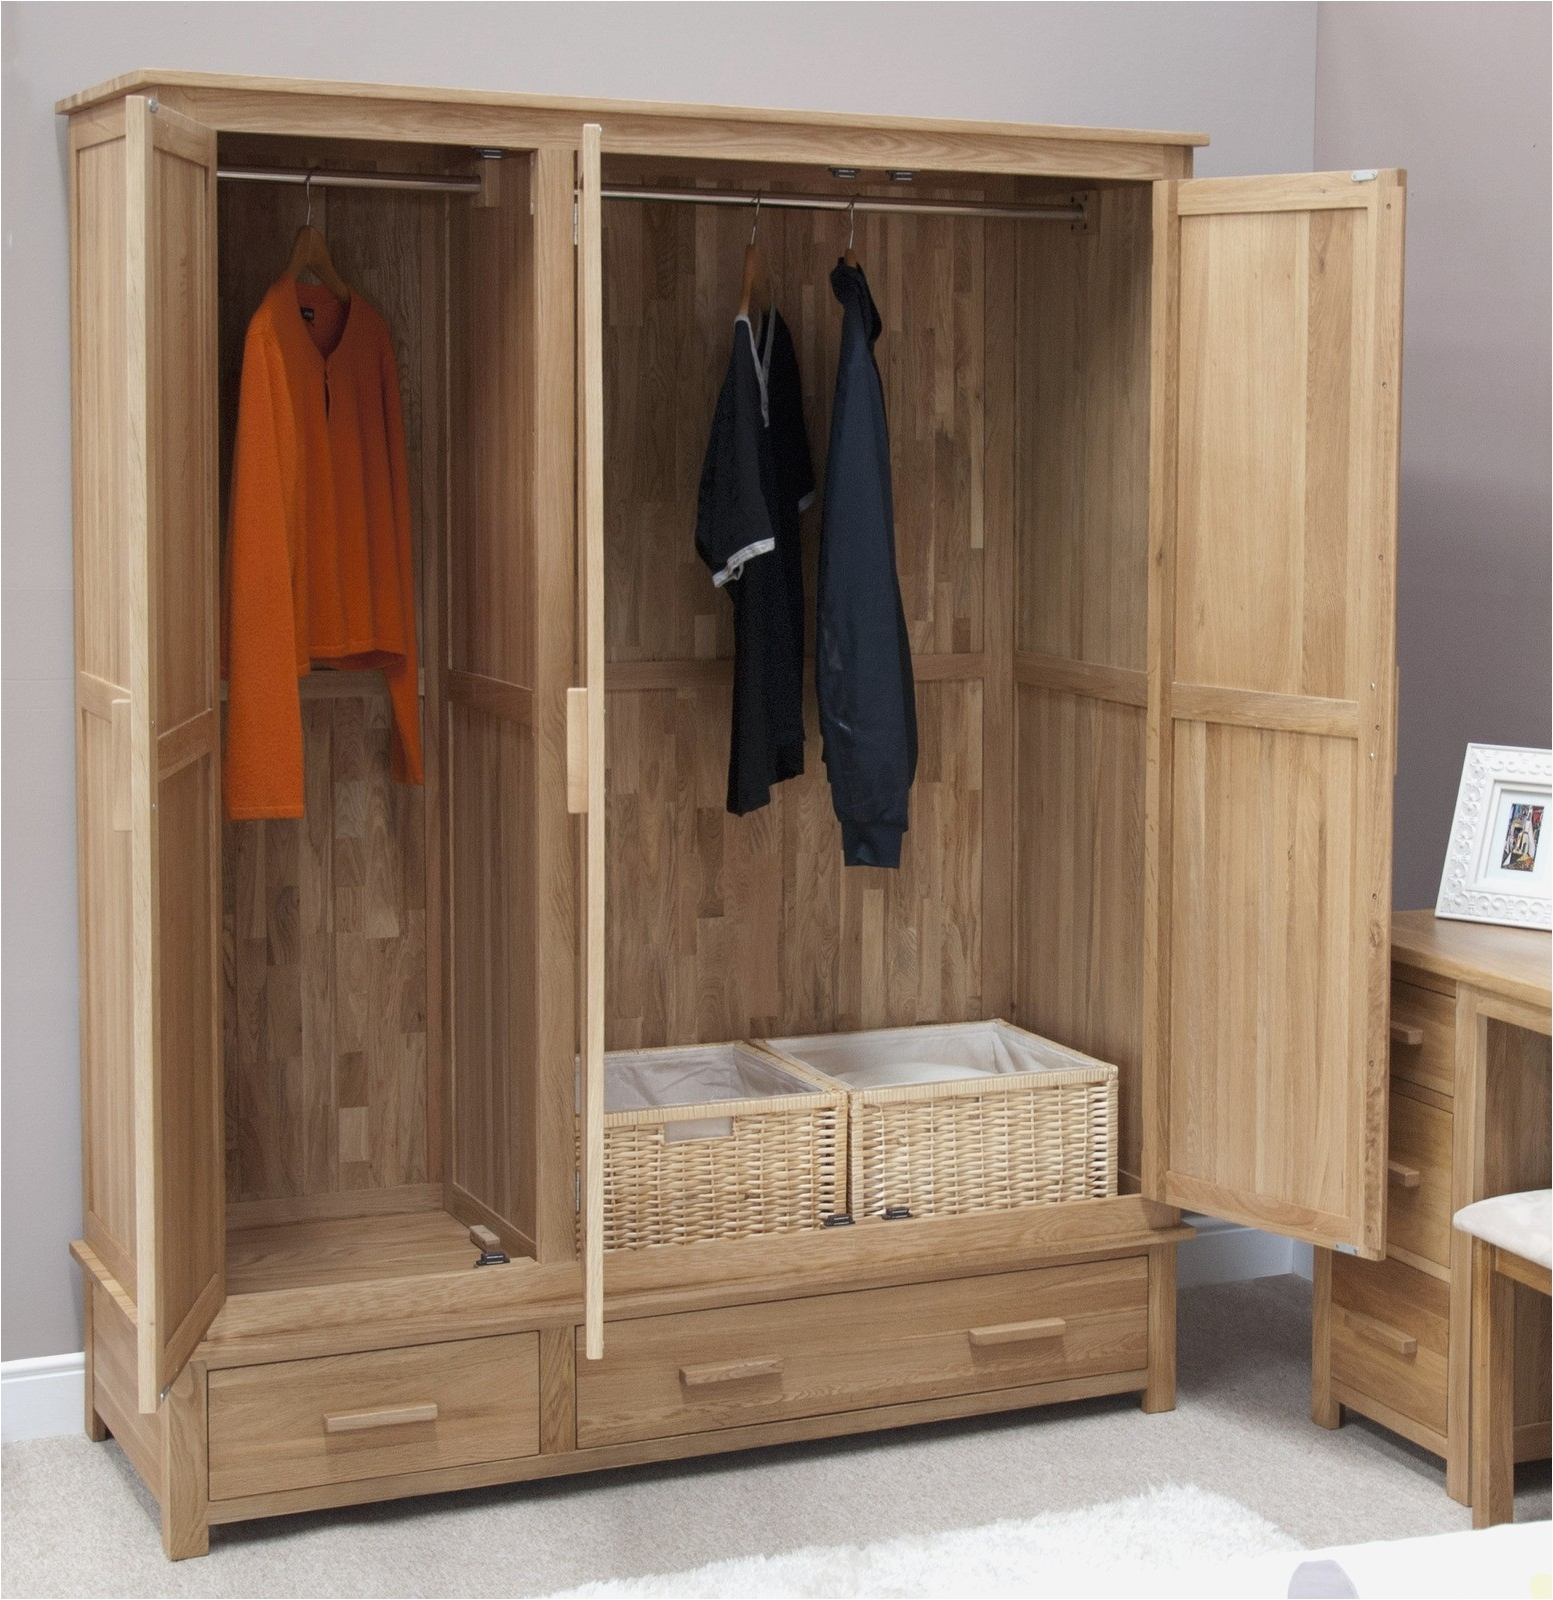 Oak Wardrobes For Sale Inside Most Recently Released Pine Oak Furniture Awesome Triple Wardrobe Wardrobes Buy Pine Oak (View 11 of 15)